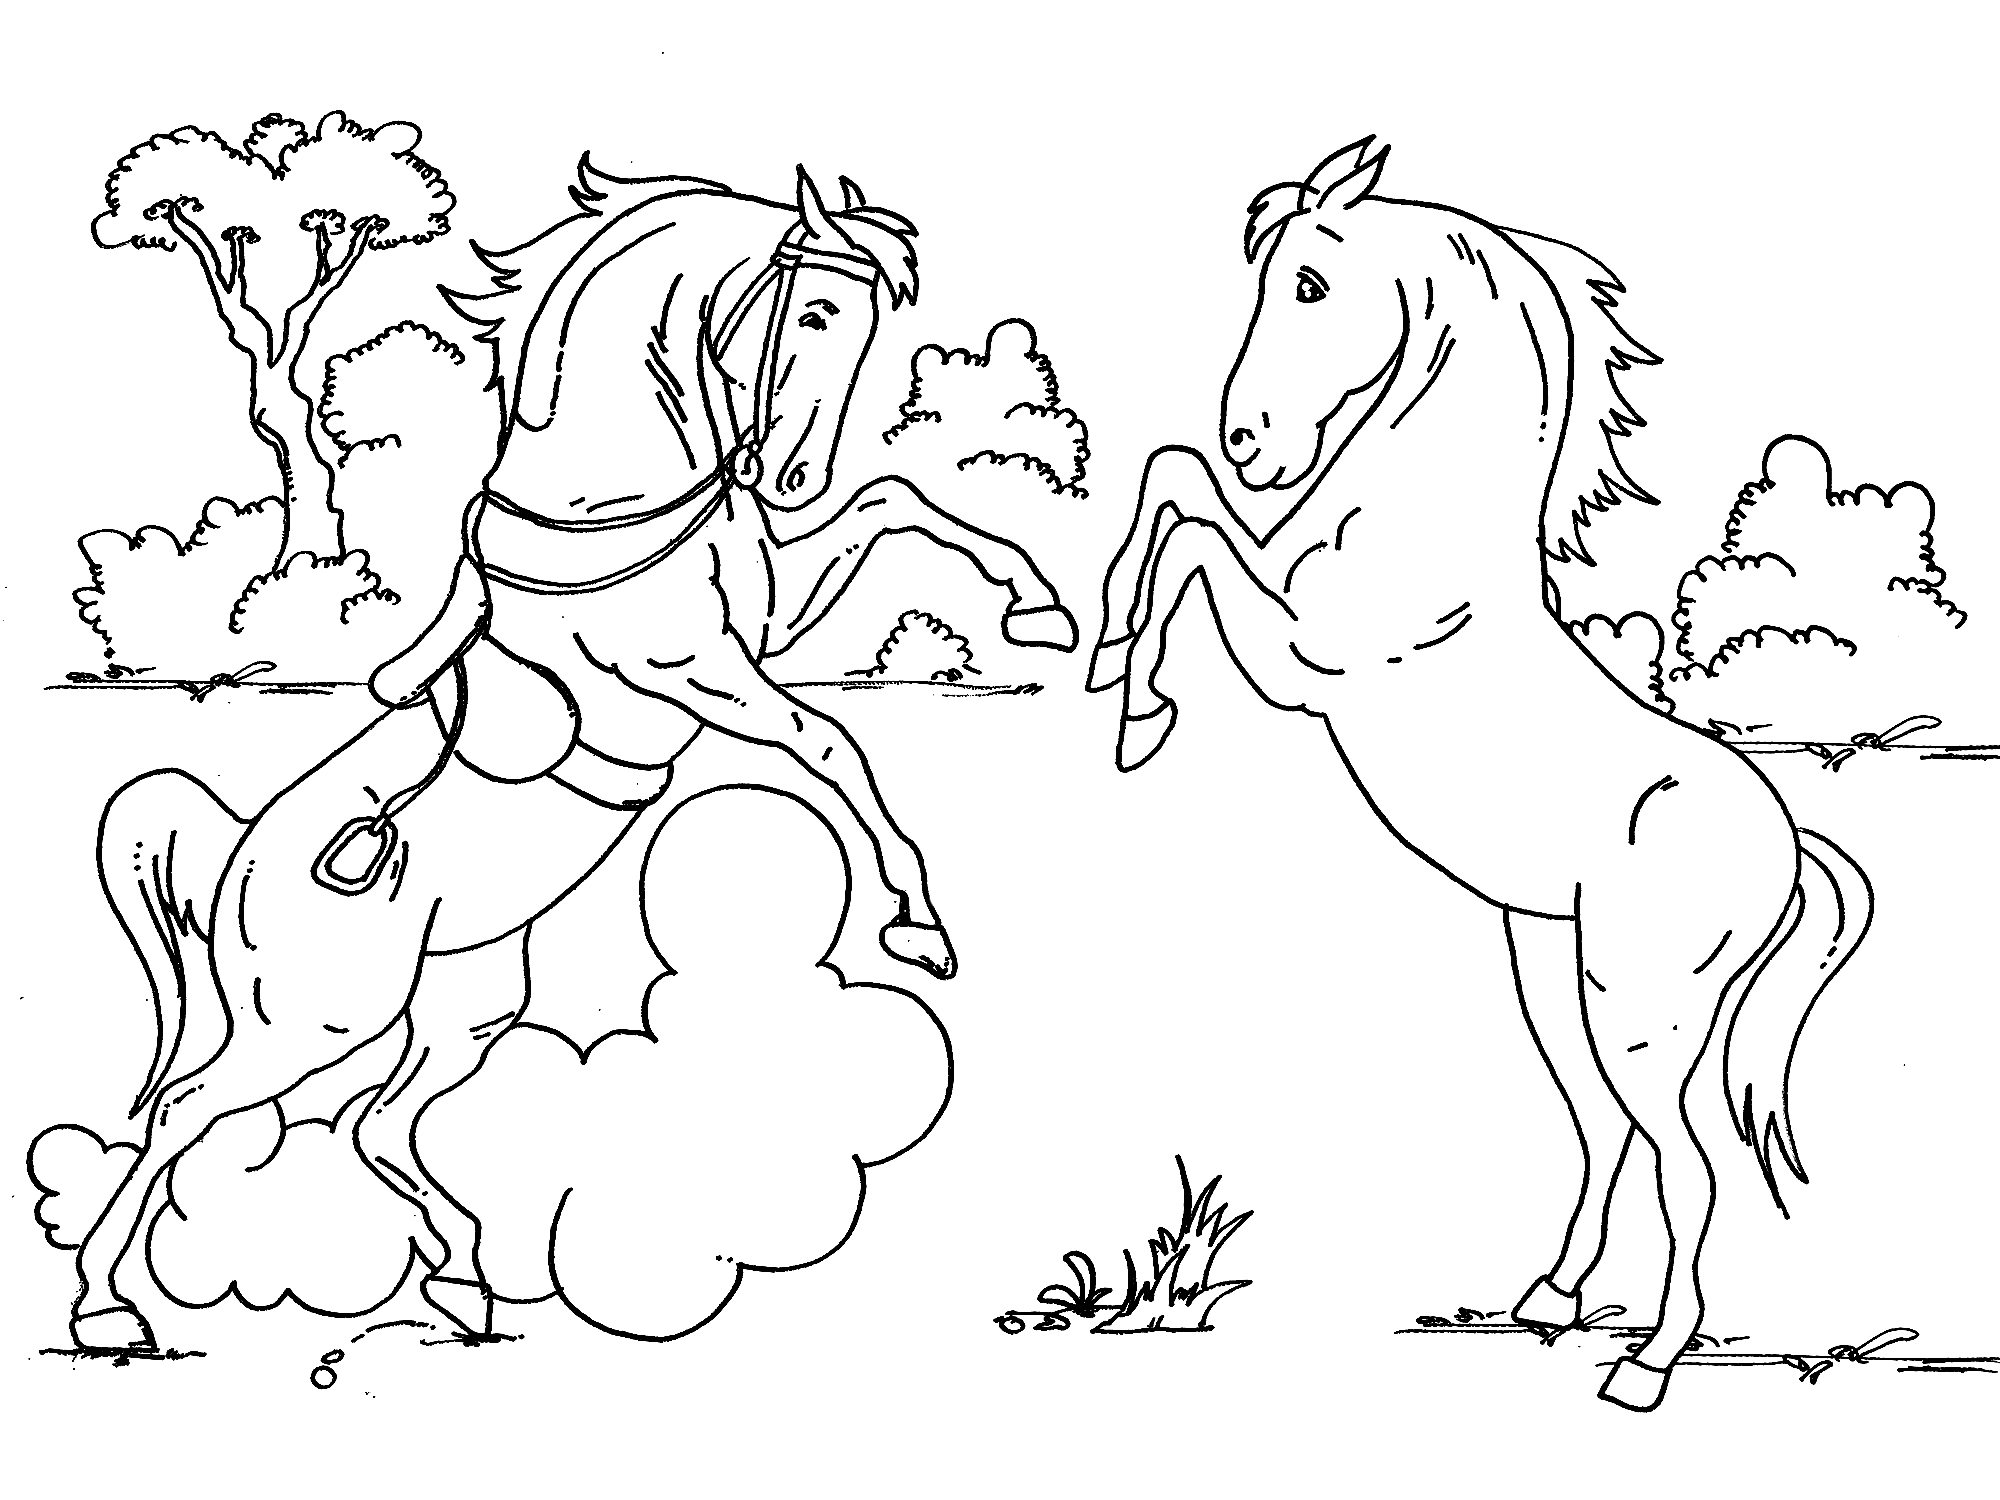 coloring pages of baby horses baby horse coloring pages coloring pages to download and coloring pages baby horses of